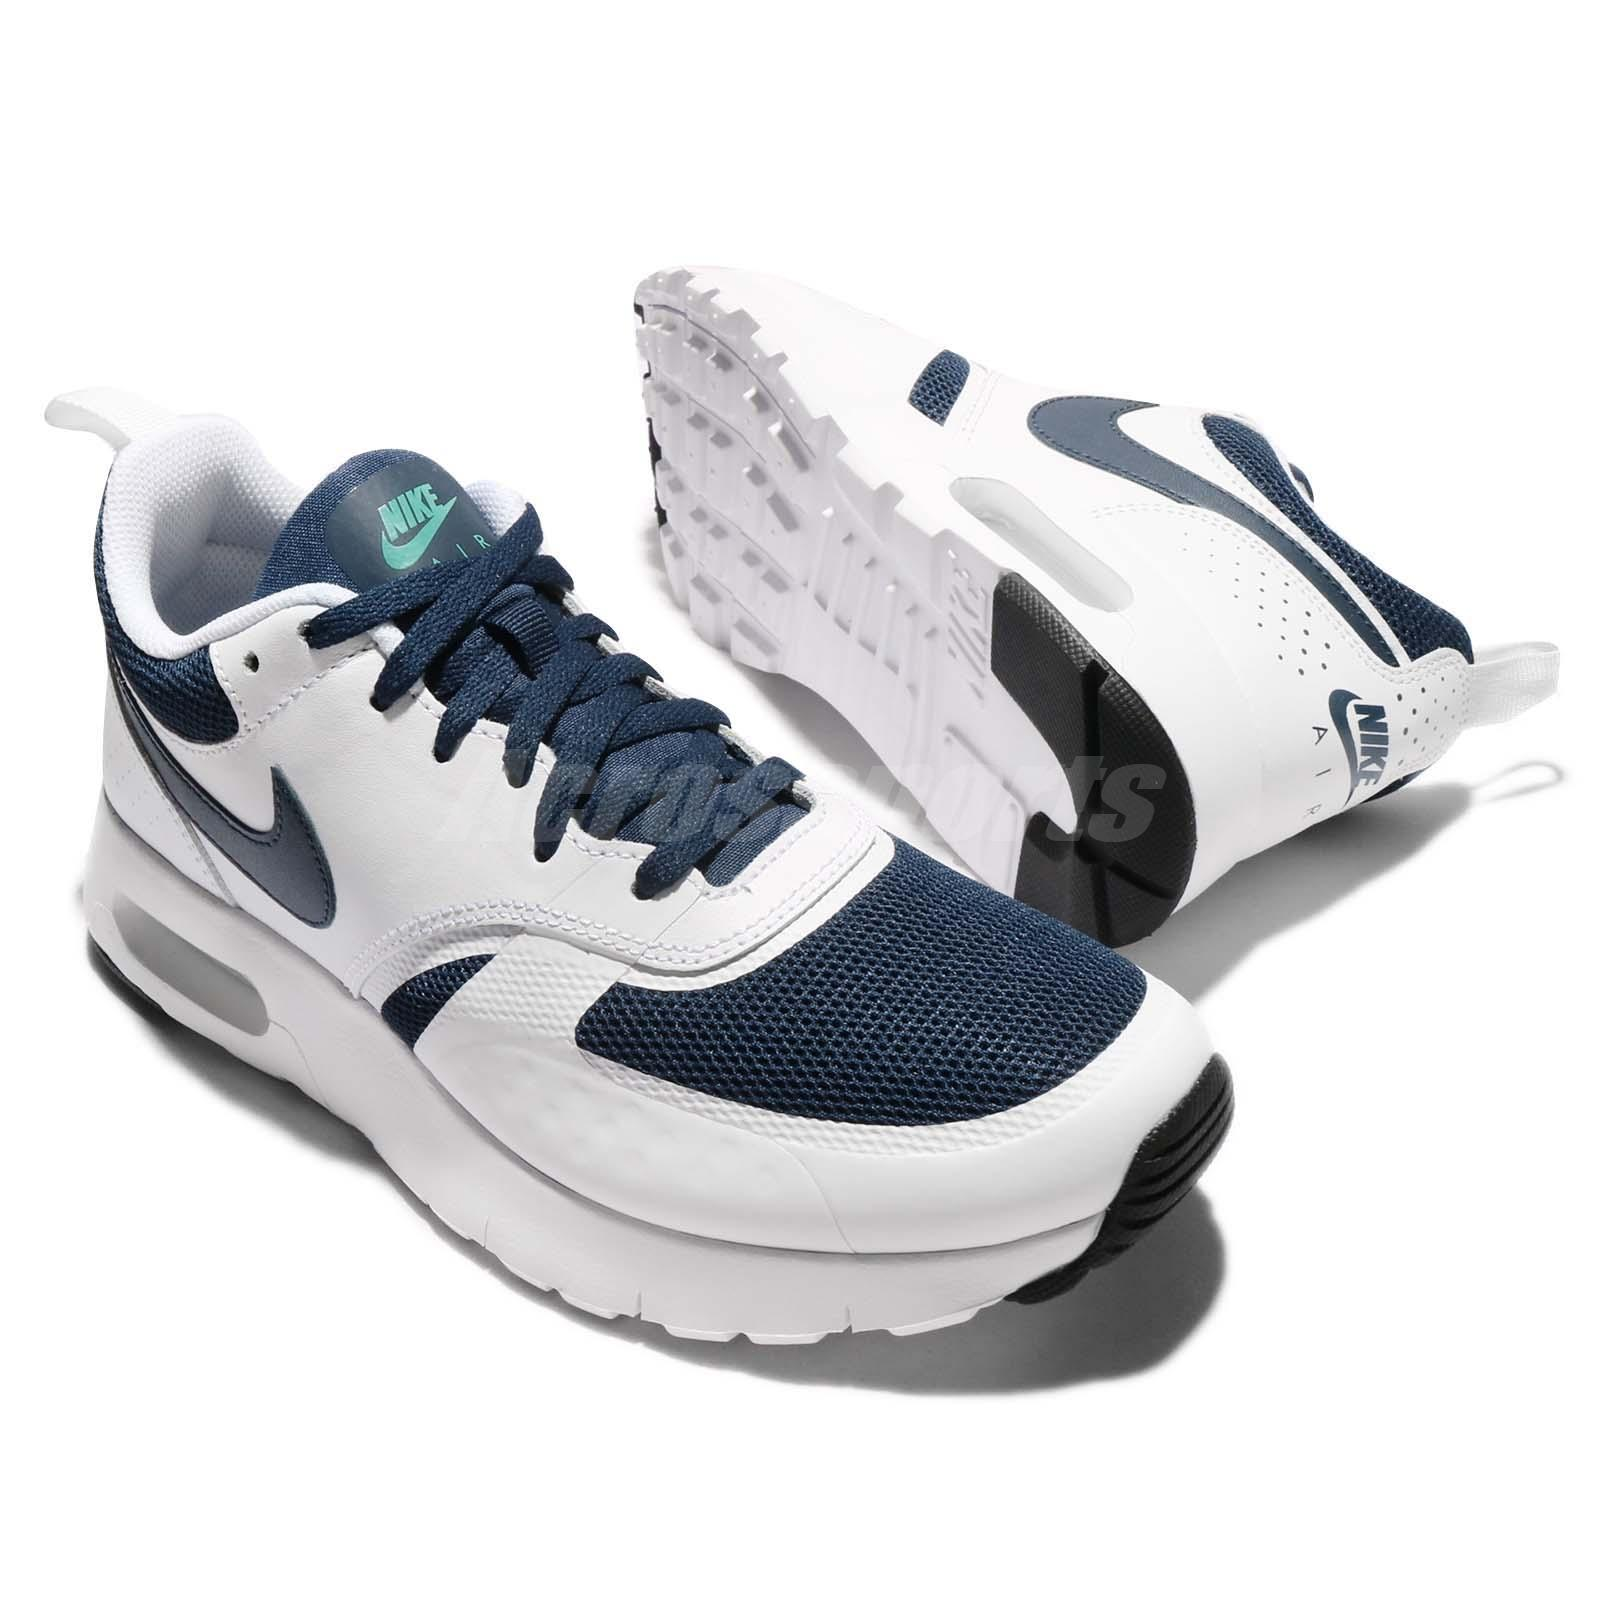 online store eee5d cd4e5 Nike Air Max Vision GS Midnight Navy Kids Boys Girls Running Shoes  917857-400